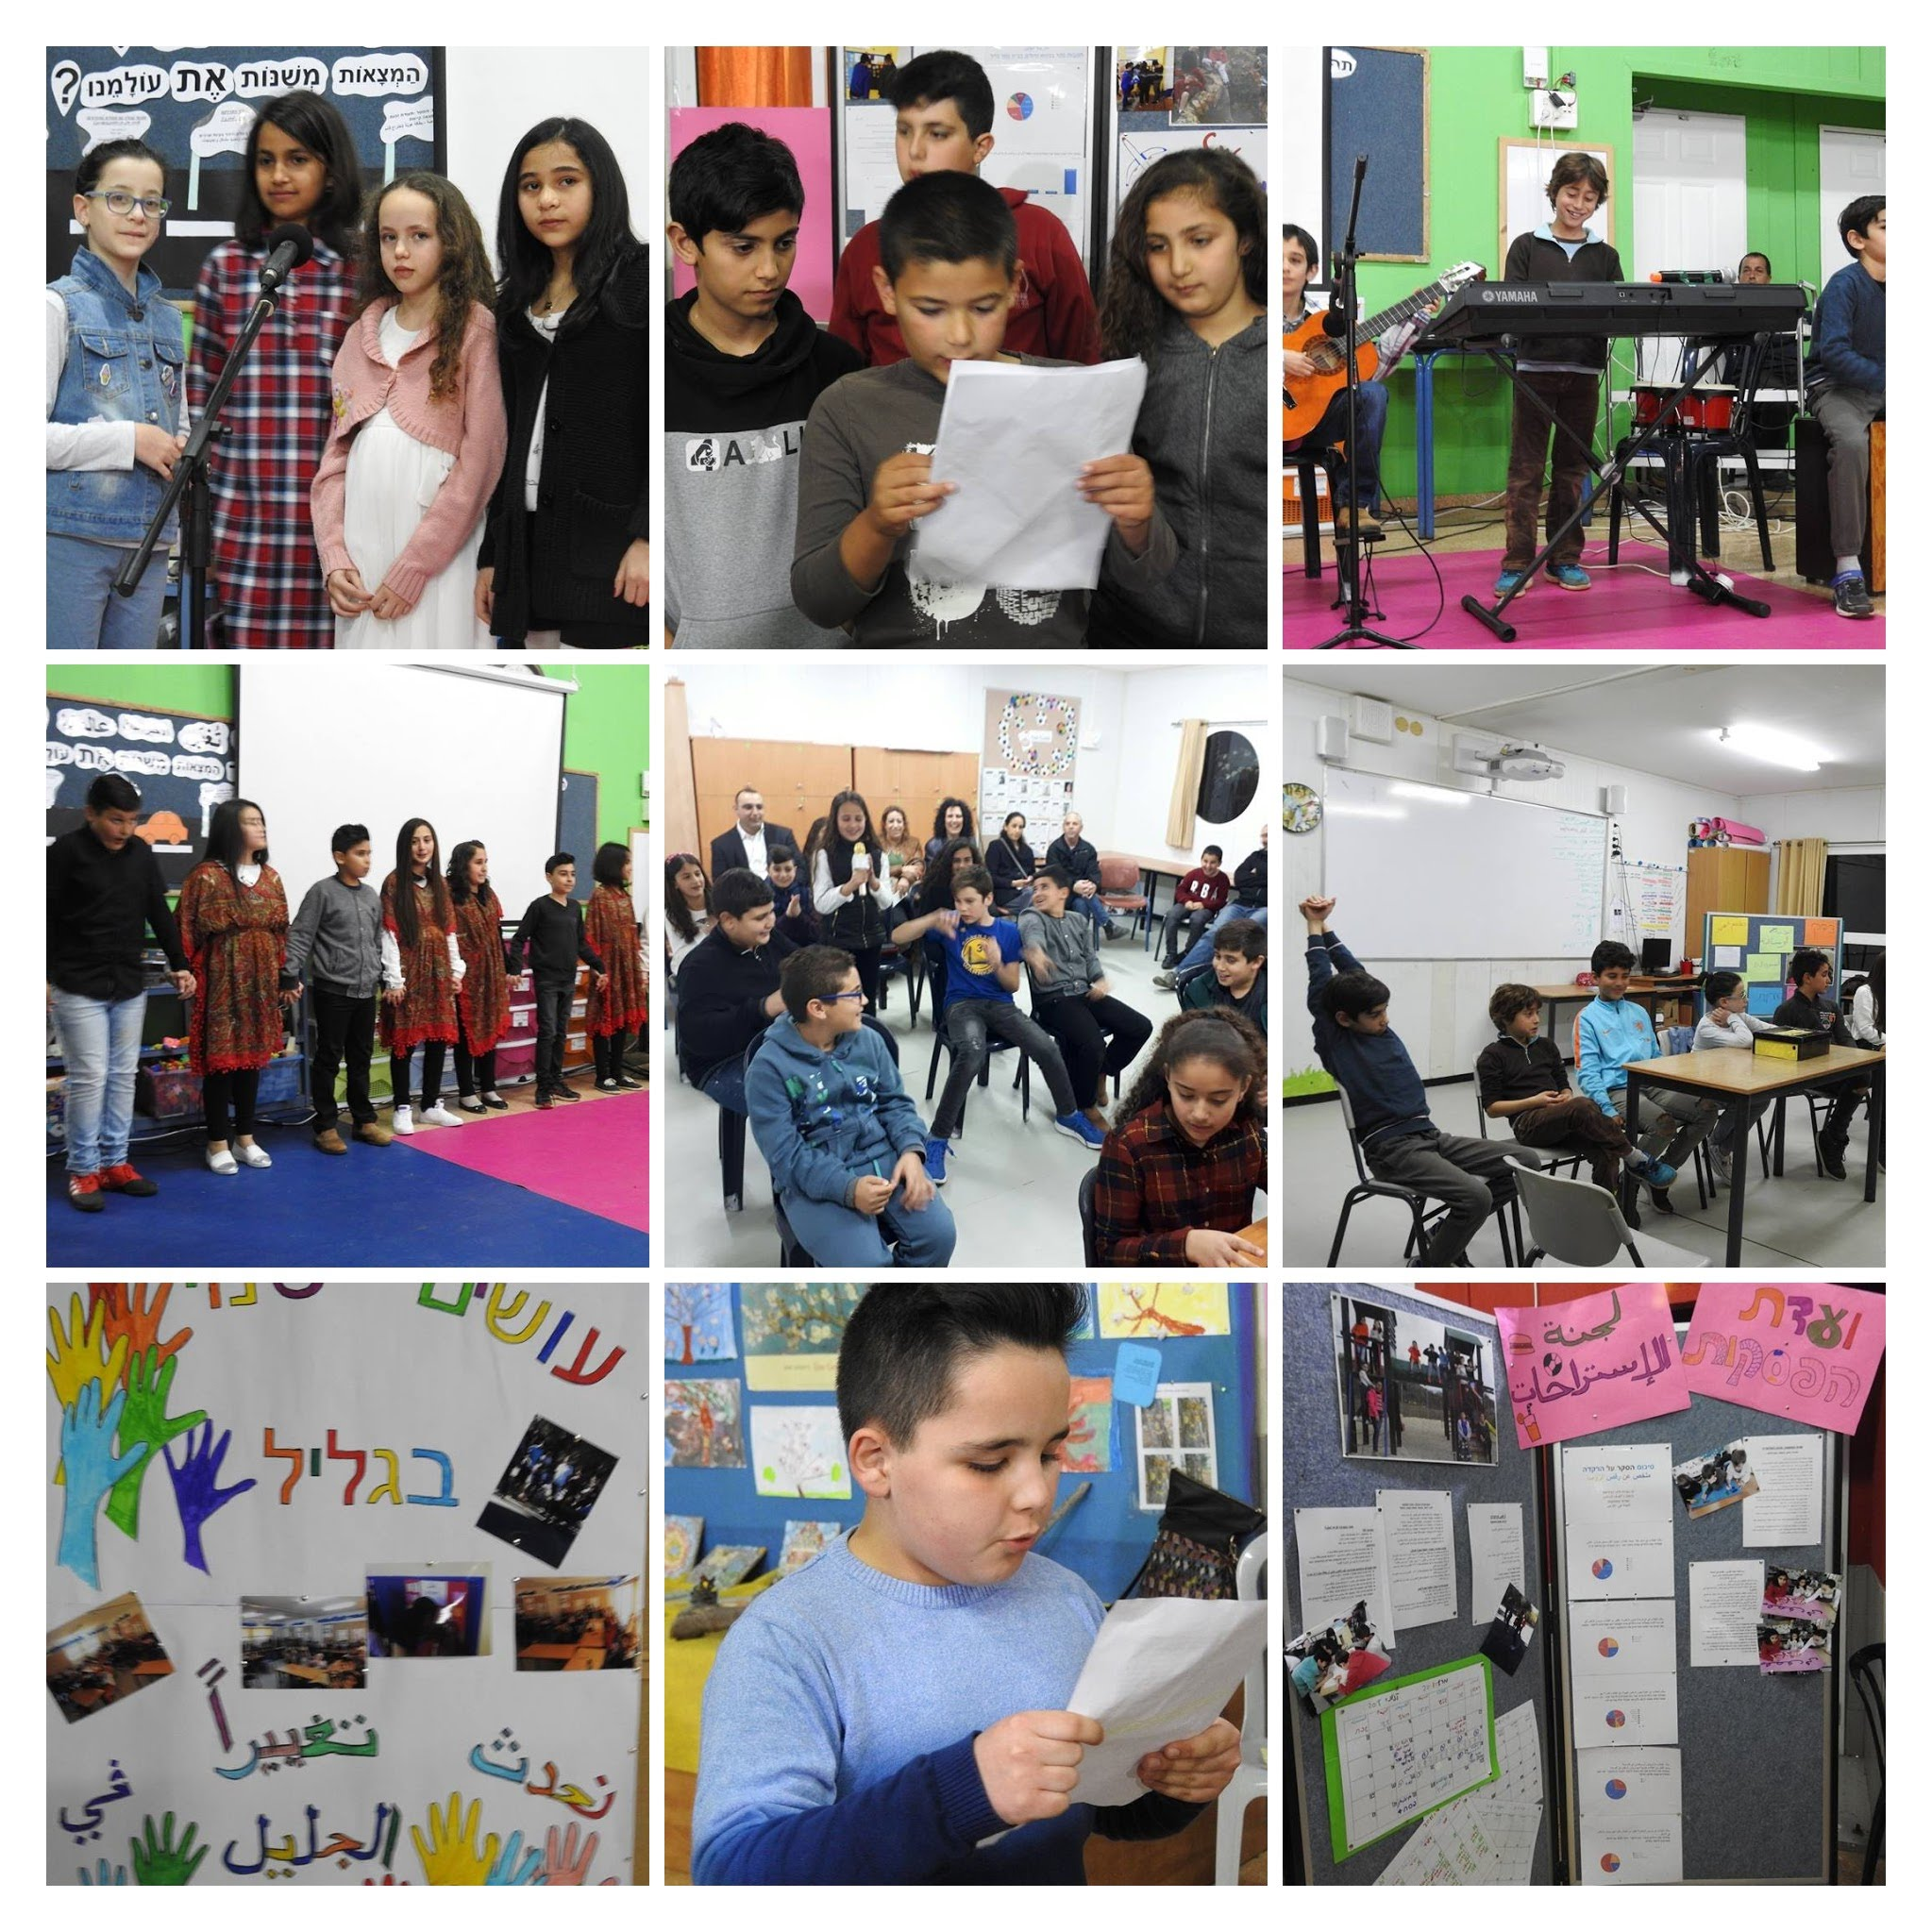 https://sites.google.com/a/galil.tzafonet.org.il/home/home/28576062_1408768119231494_461964918066245700_n-COLLAGE.jpg?attredirects=0